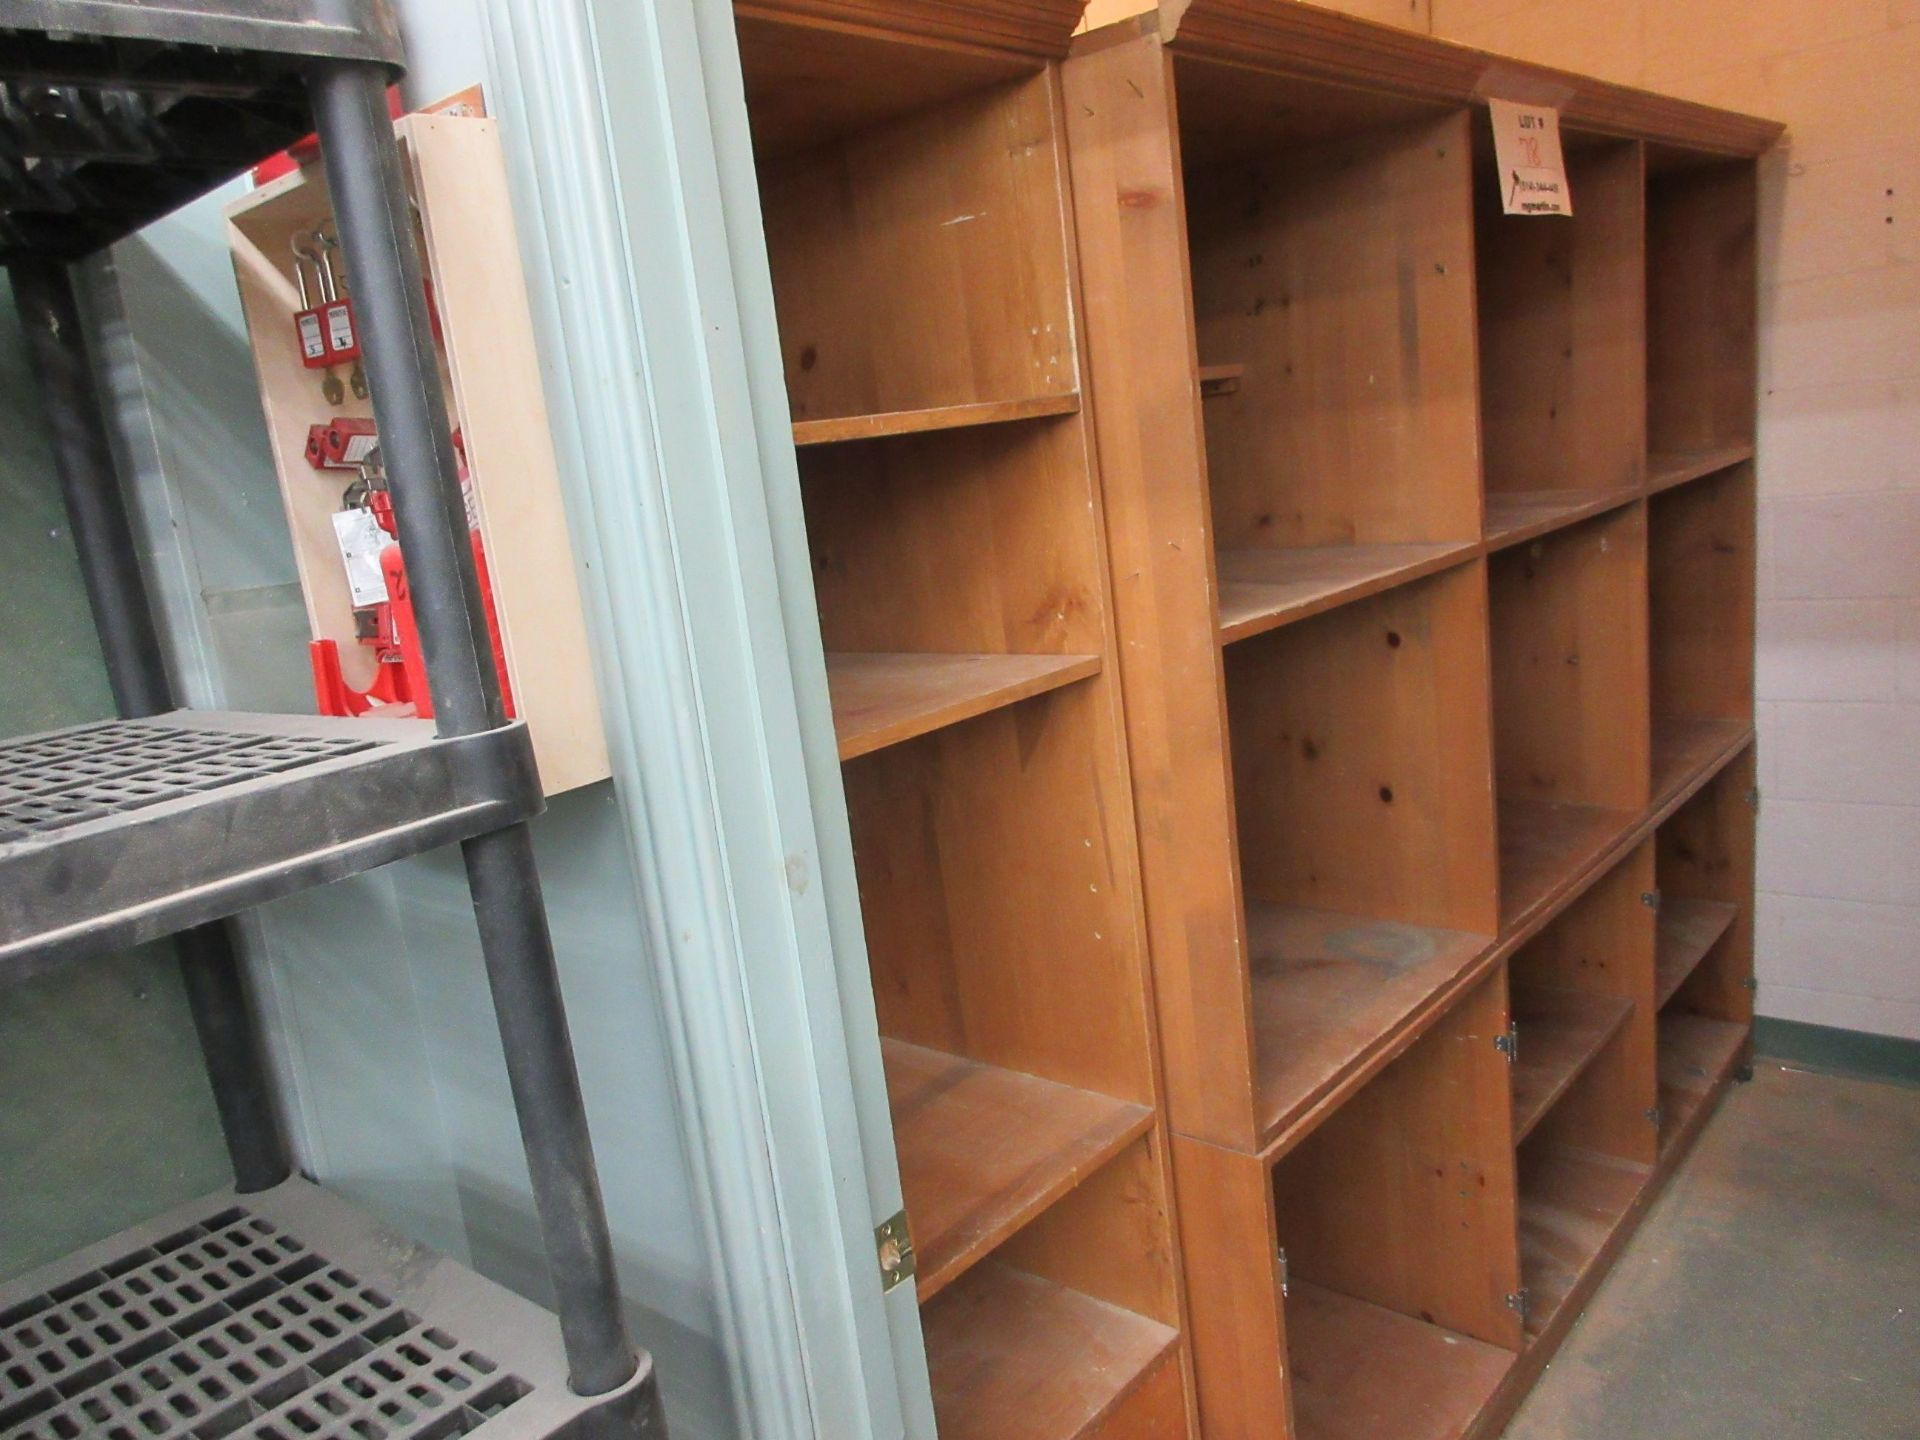 LOT including assorted shelving, etc. - Image 2 of 3